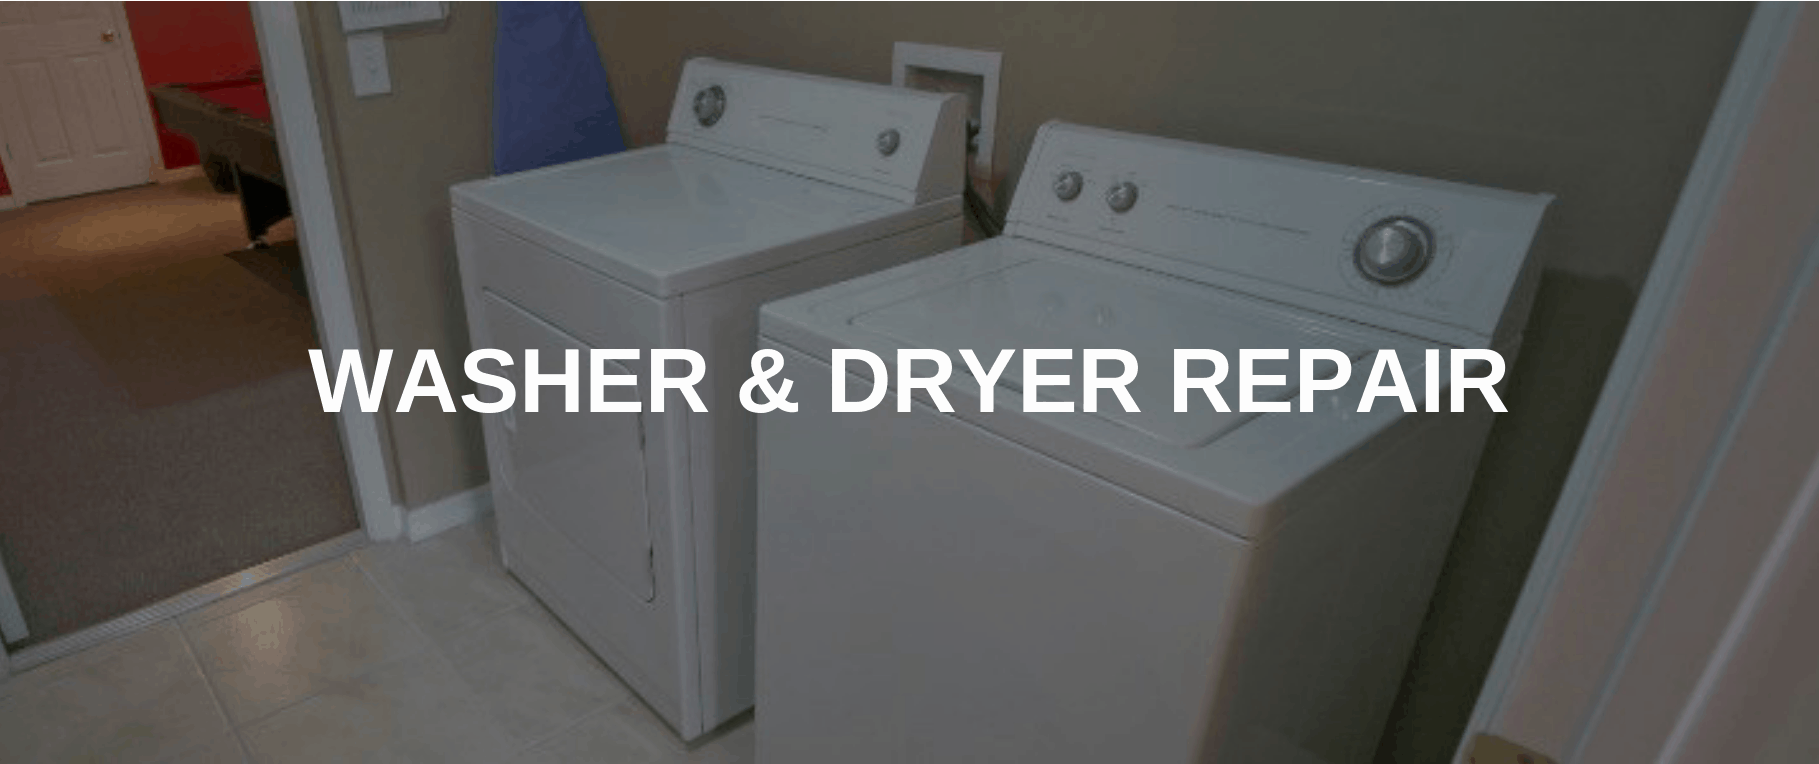 washing machine repair irvine